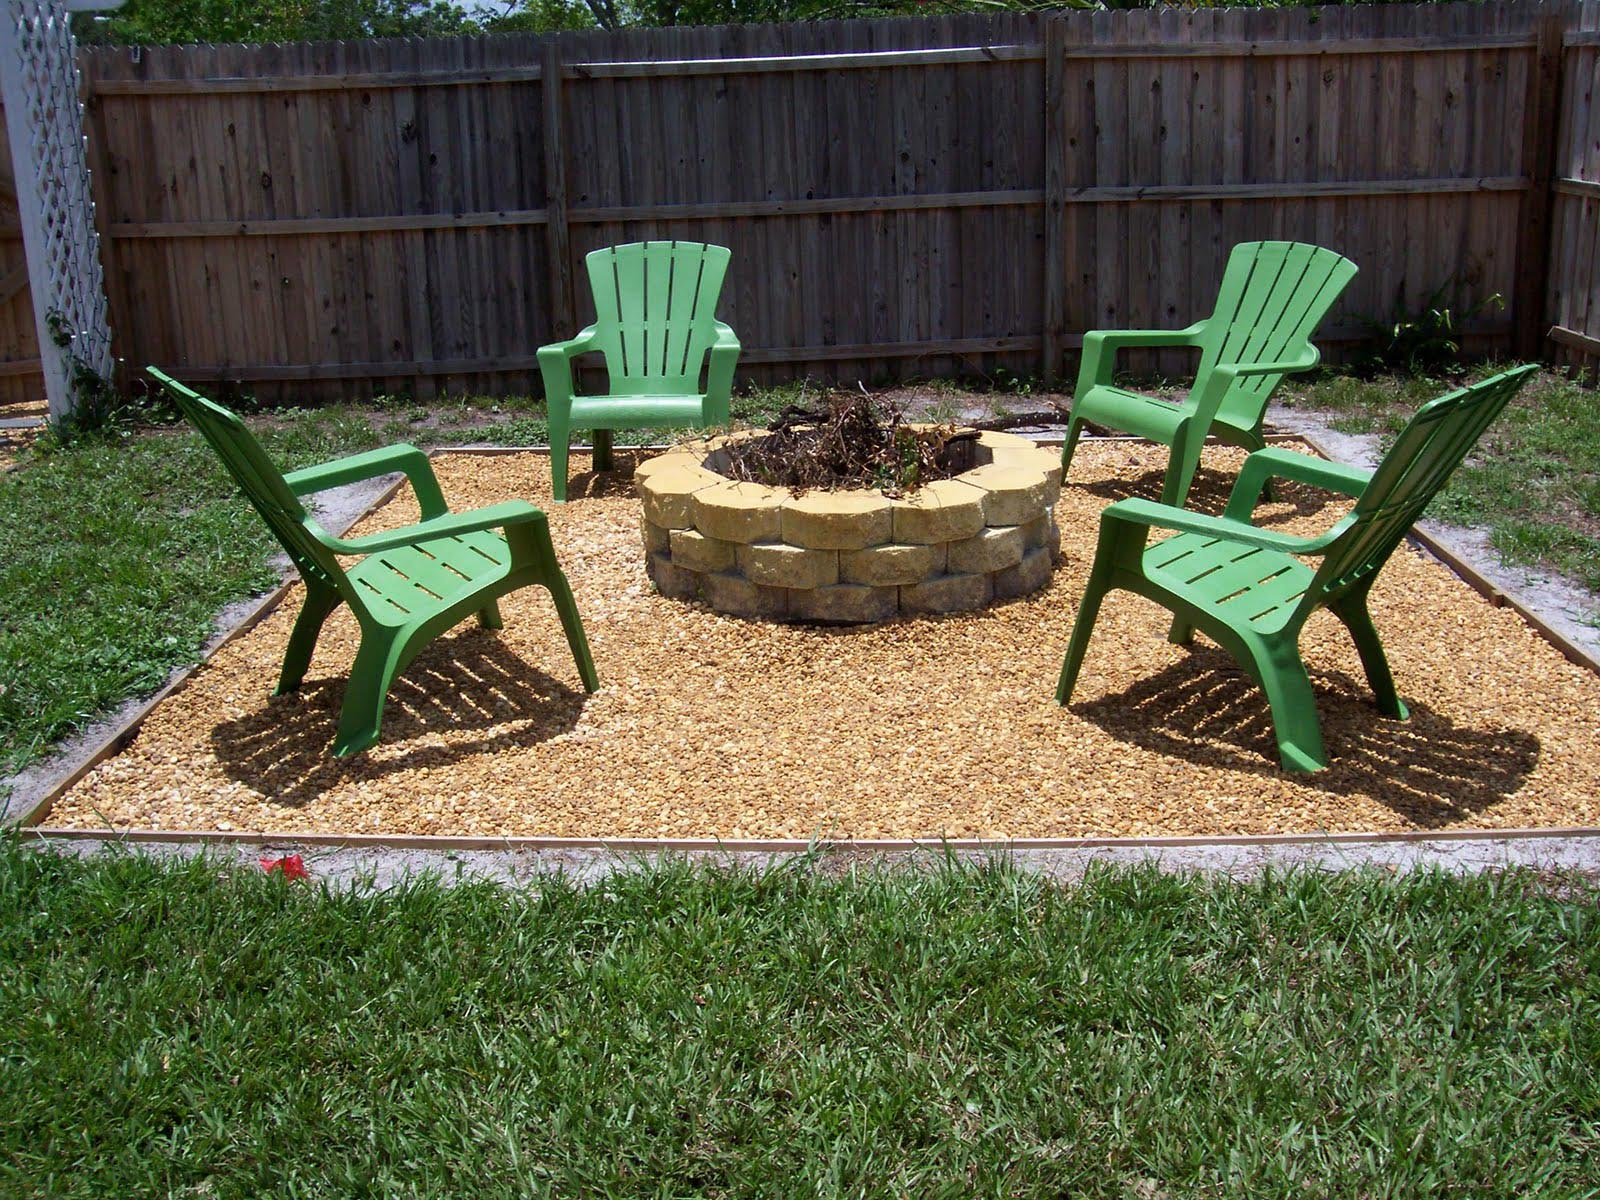 cool outdoor fire pit ideas - Outdoor Fire Pit Design Ideas